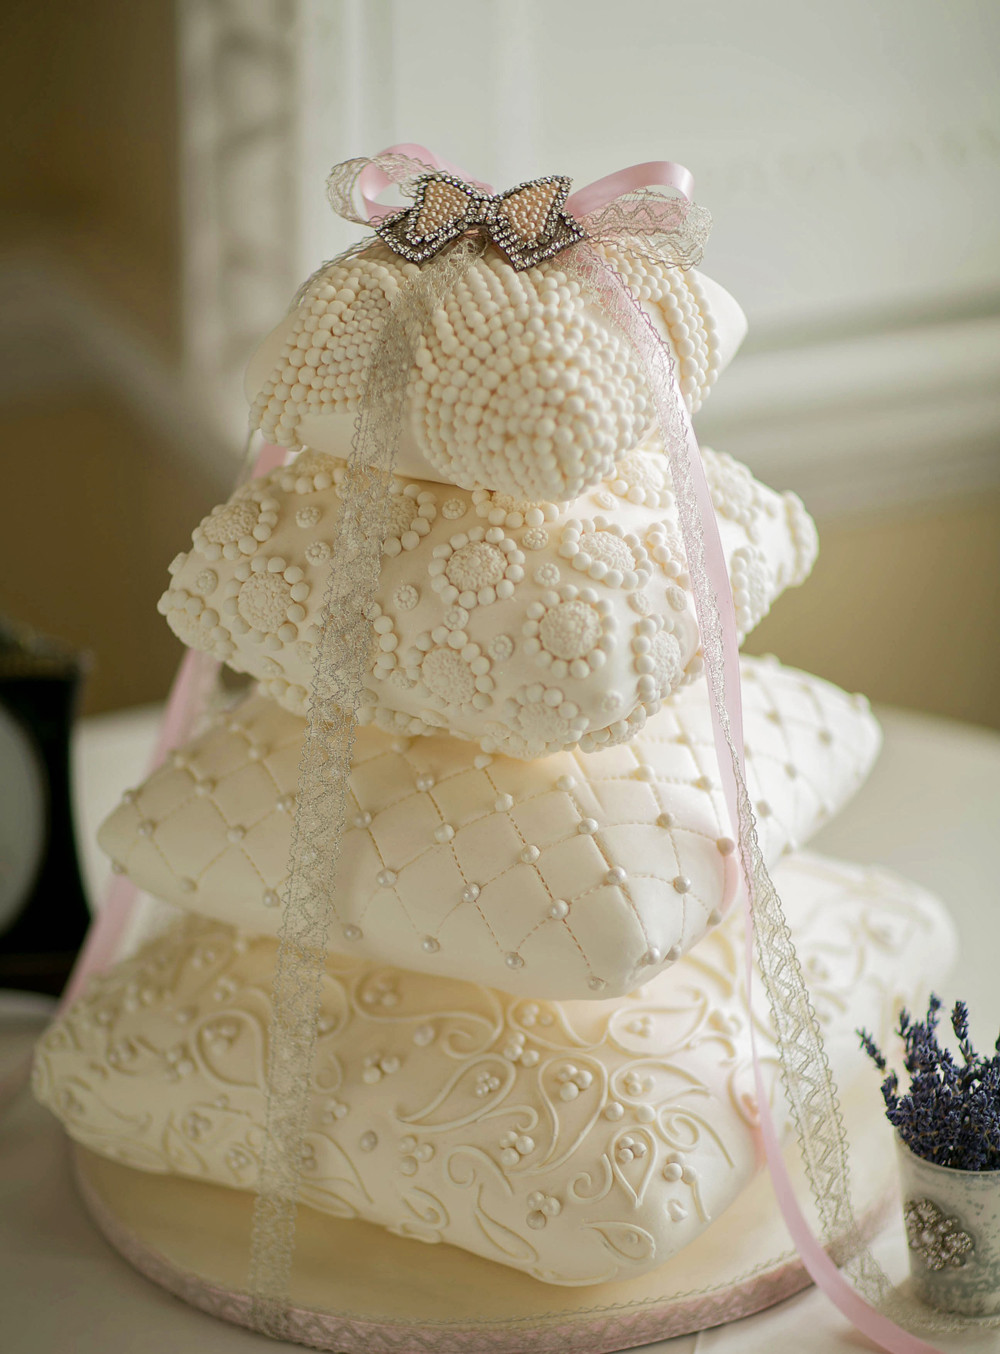 Pillow Wedding Cakes  Cake Food & Drink ideas Smashing the Glass